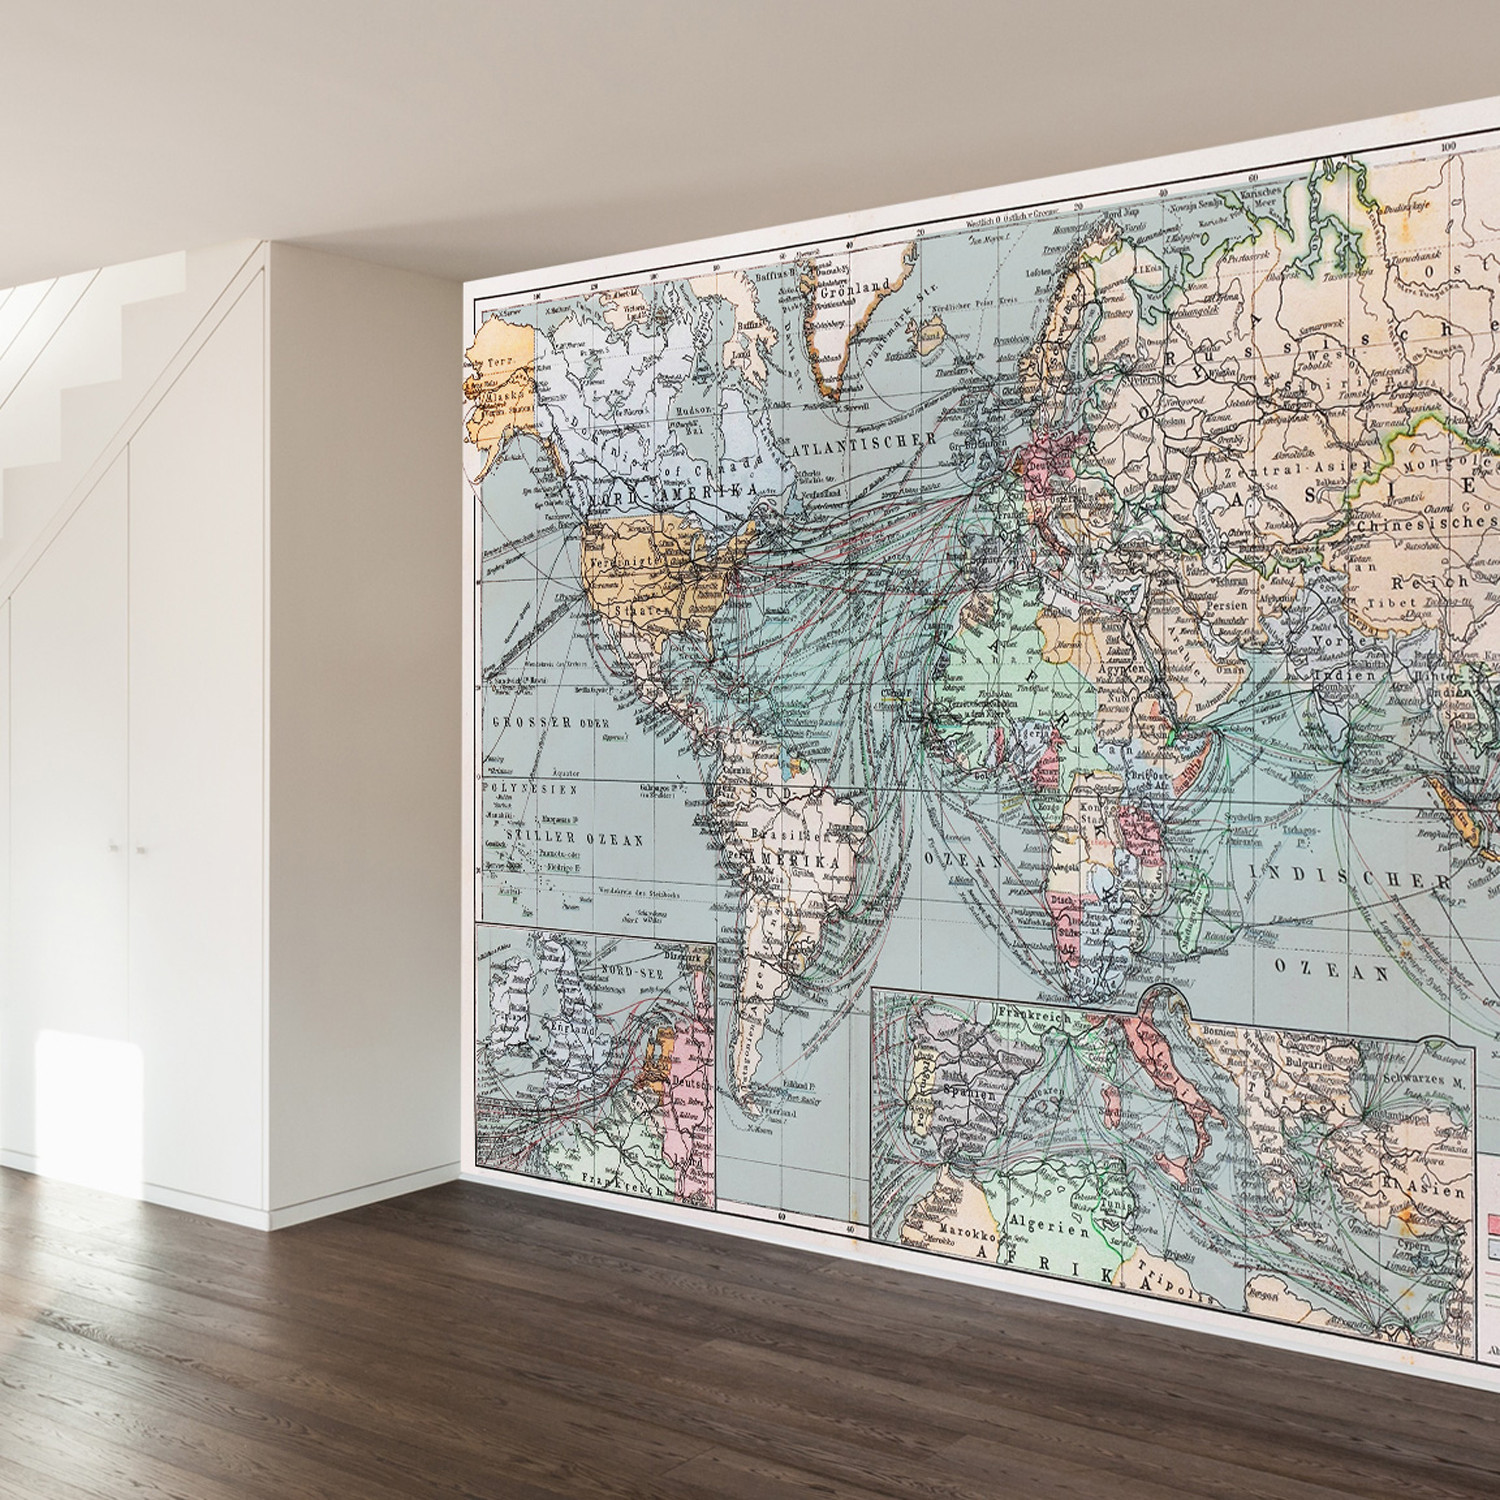 Vintage world map wall mural decal 100 l x 100 w walls for Antique world map wall mural